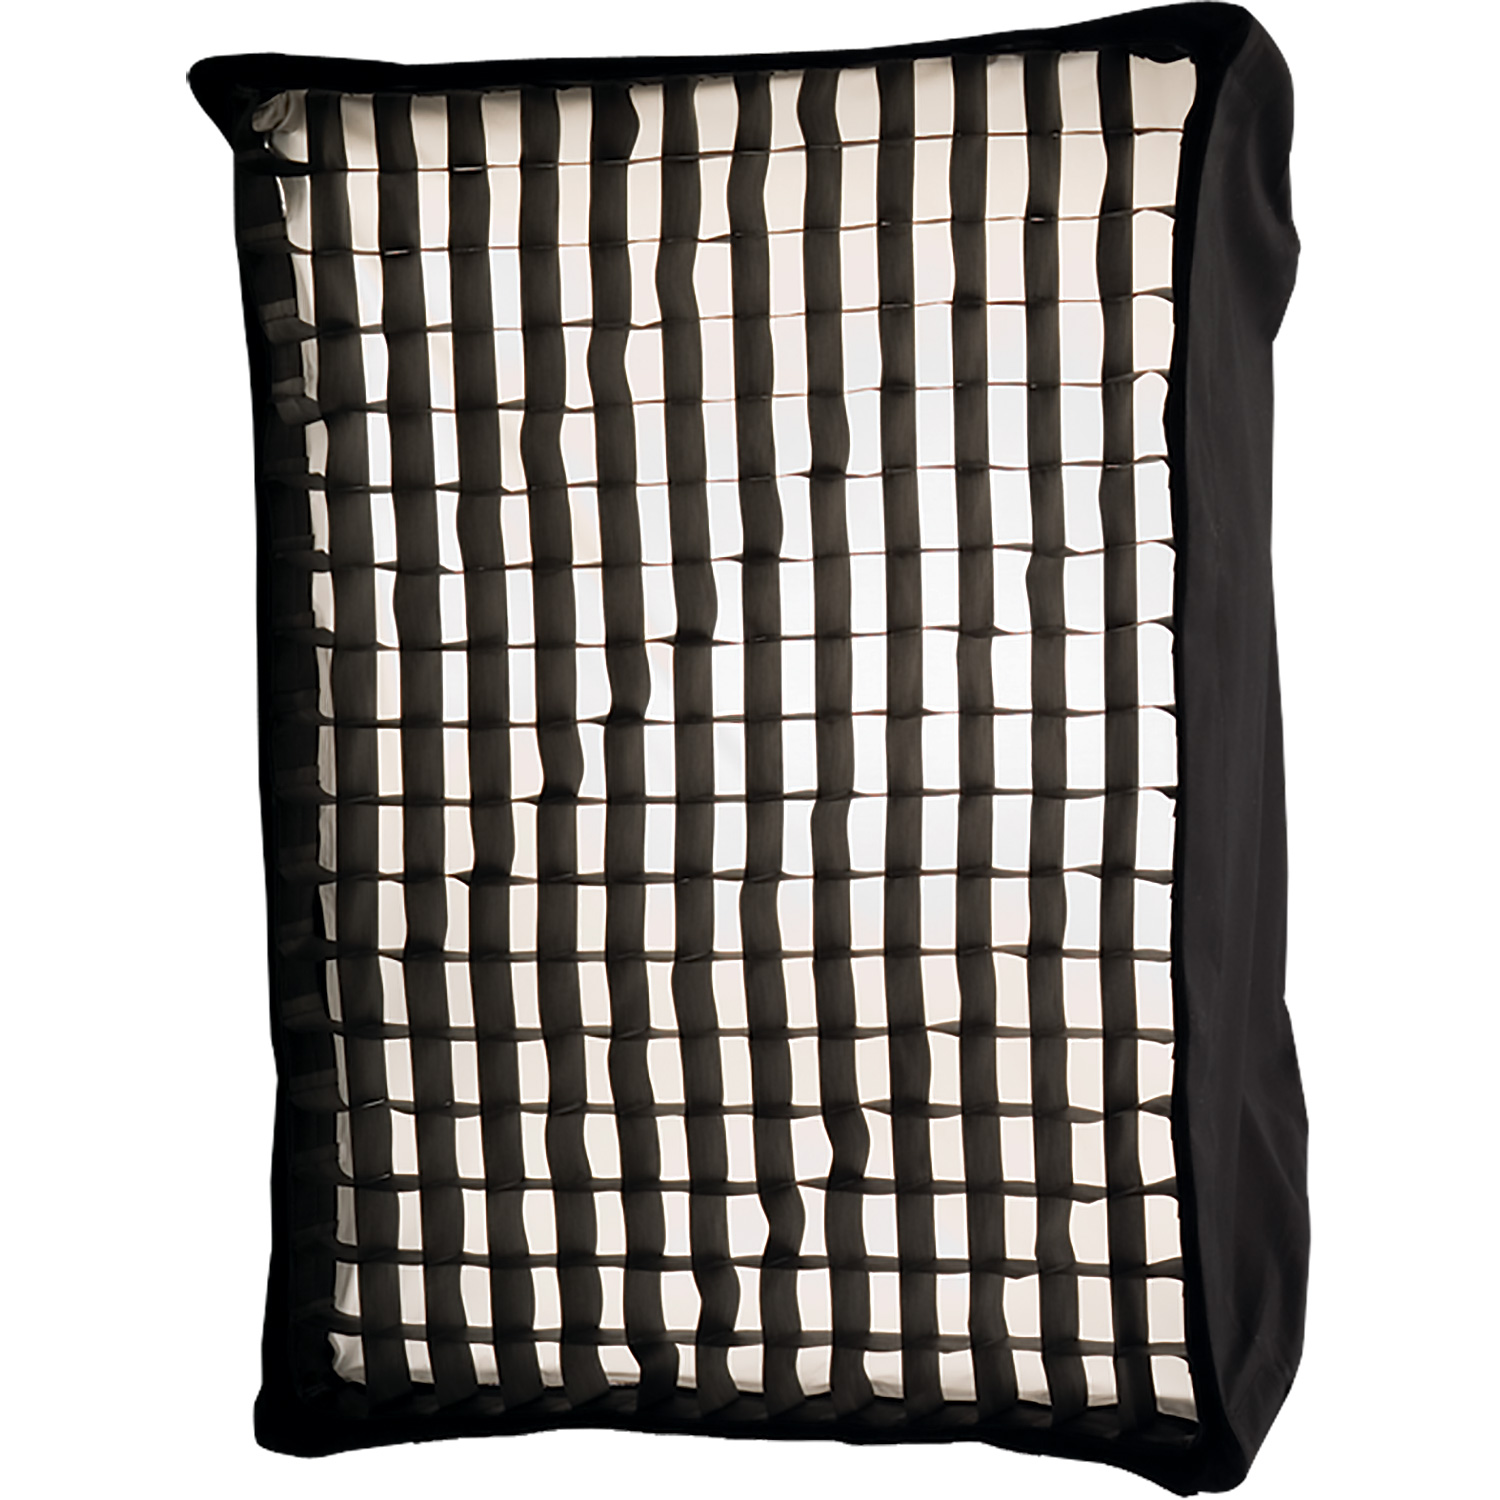 40° Egg Crate Grid for 24-in. x 32-in. Softbox